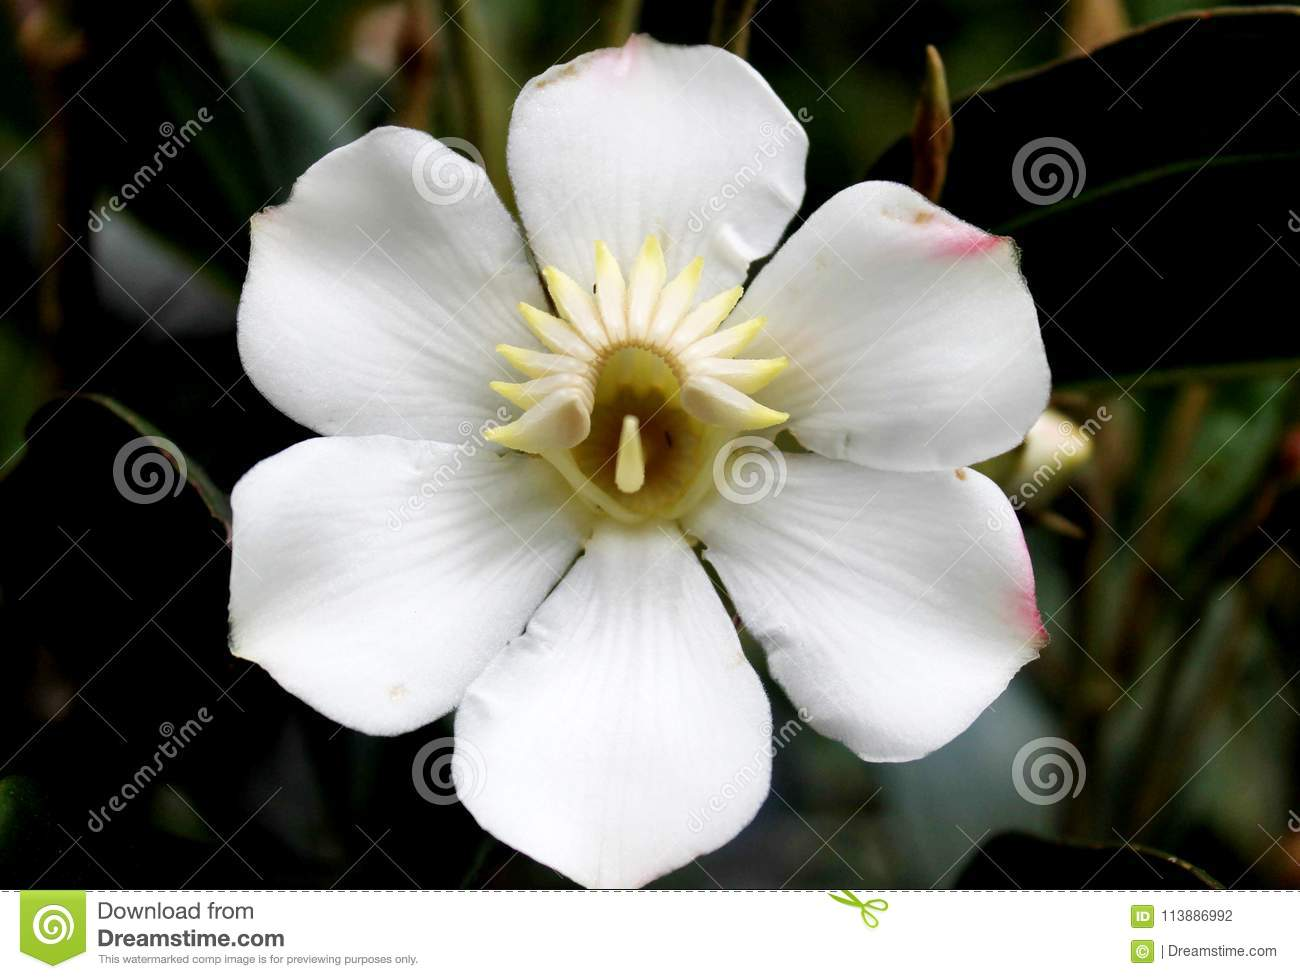 A Flower White With Six Petals Stock Photo Image Of Garden Forest